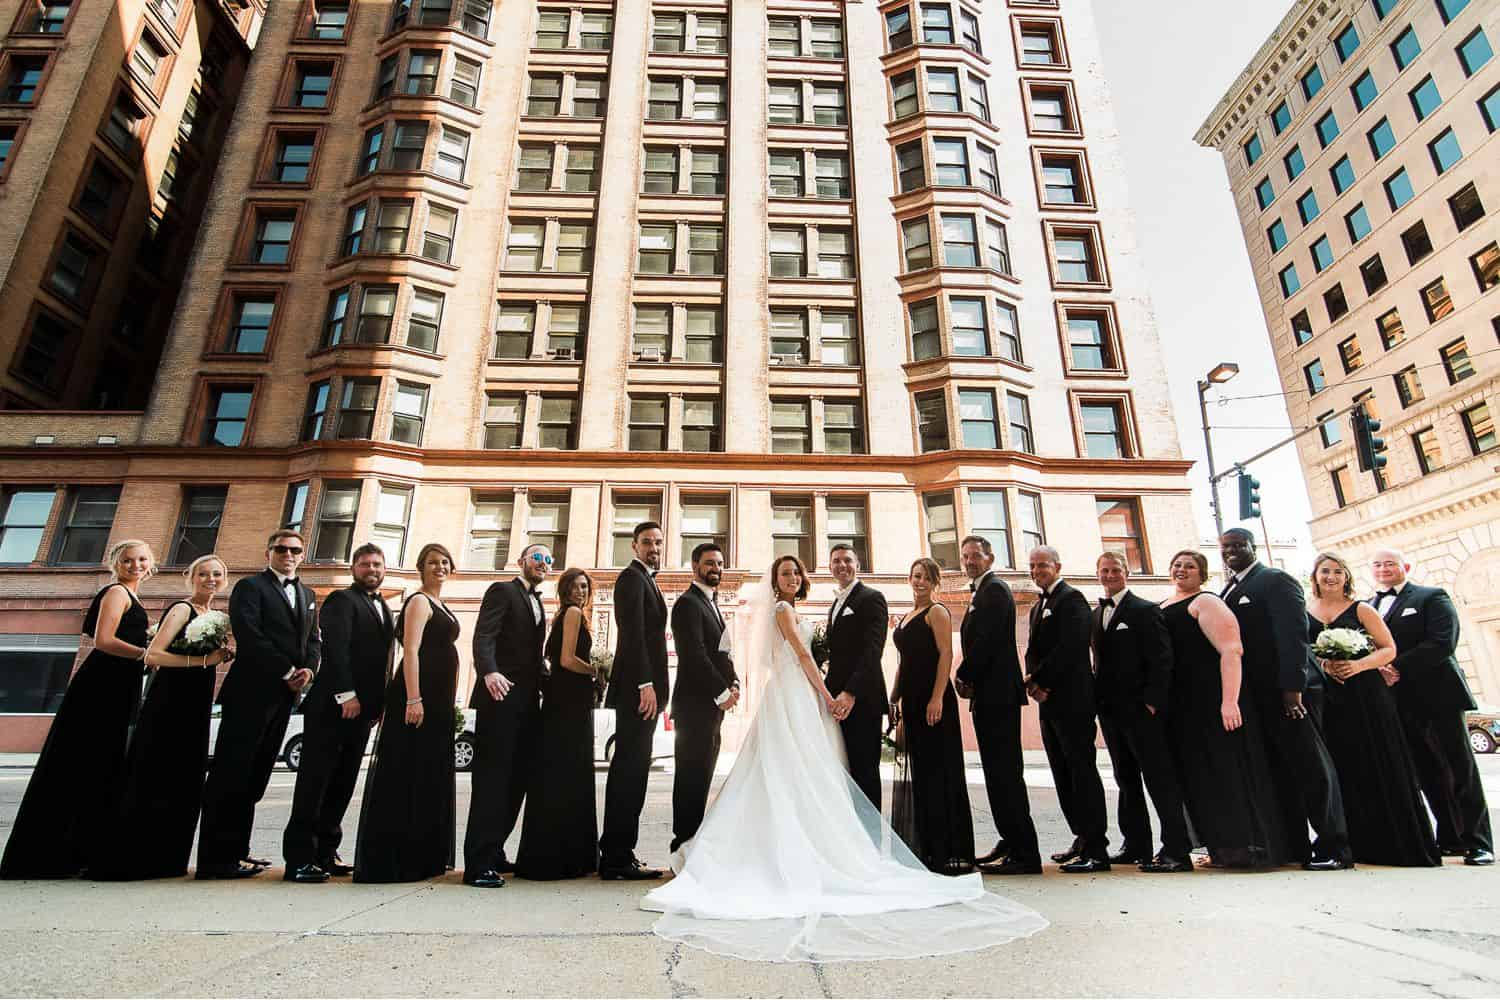 A bride and groom stand shoulder-to-shoulder with their wedding party in the middle of a city.